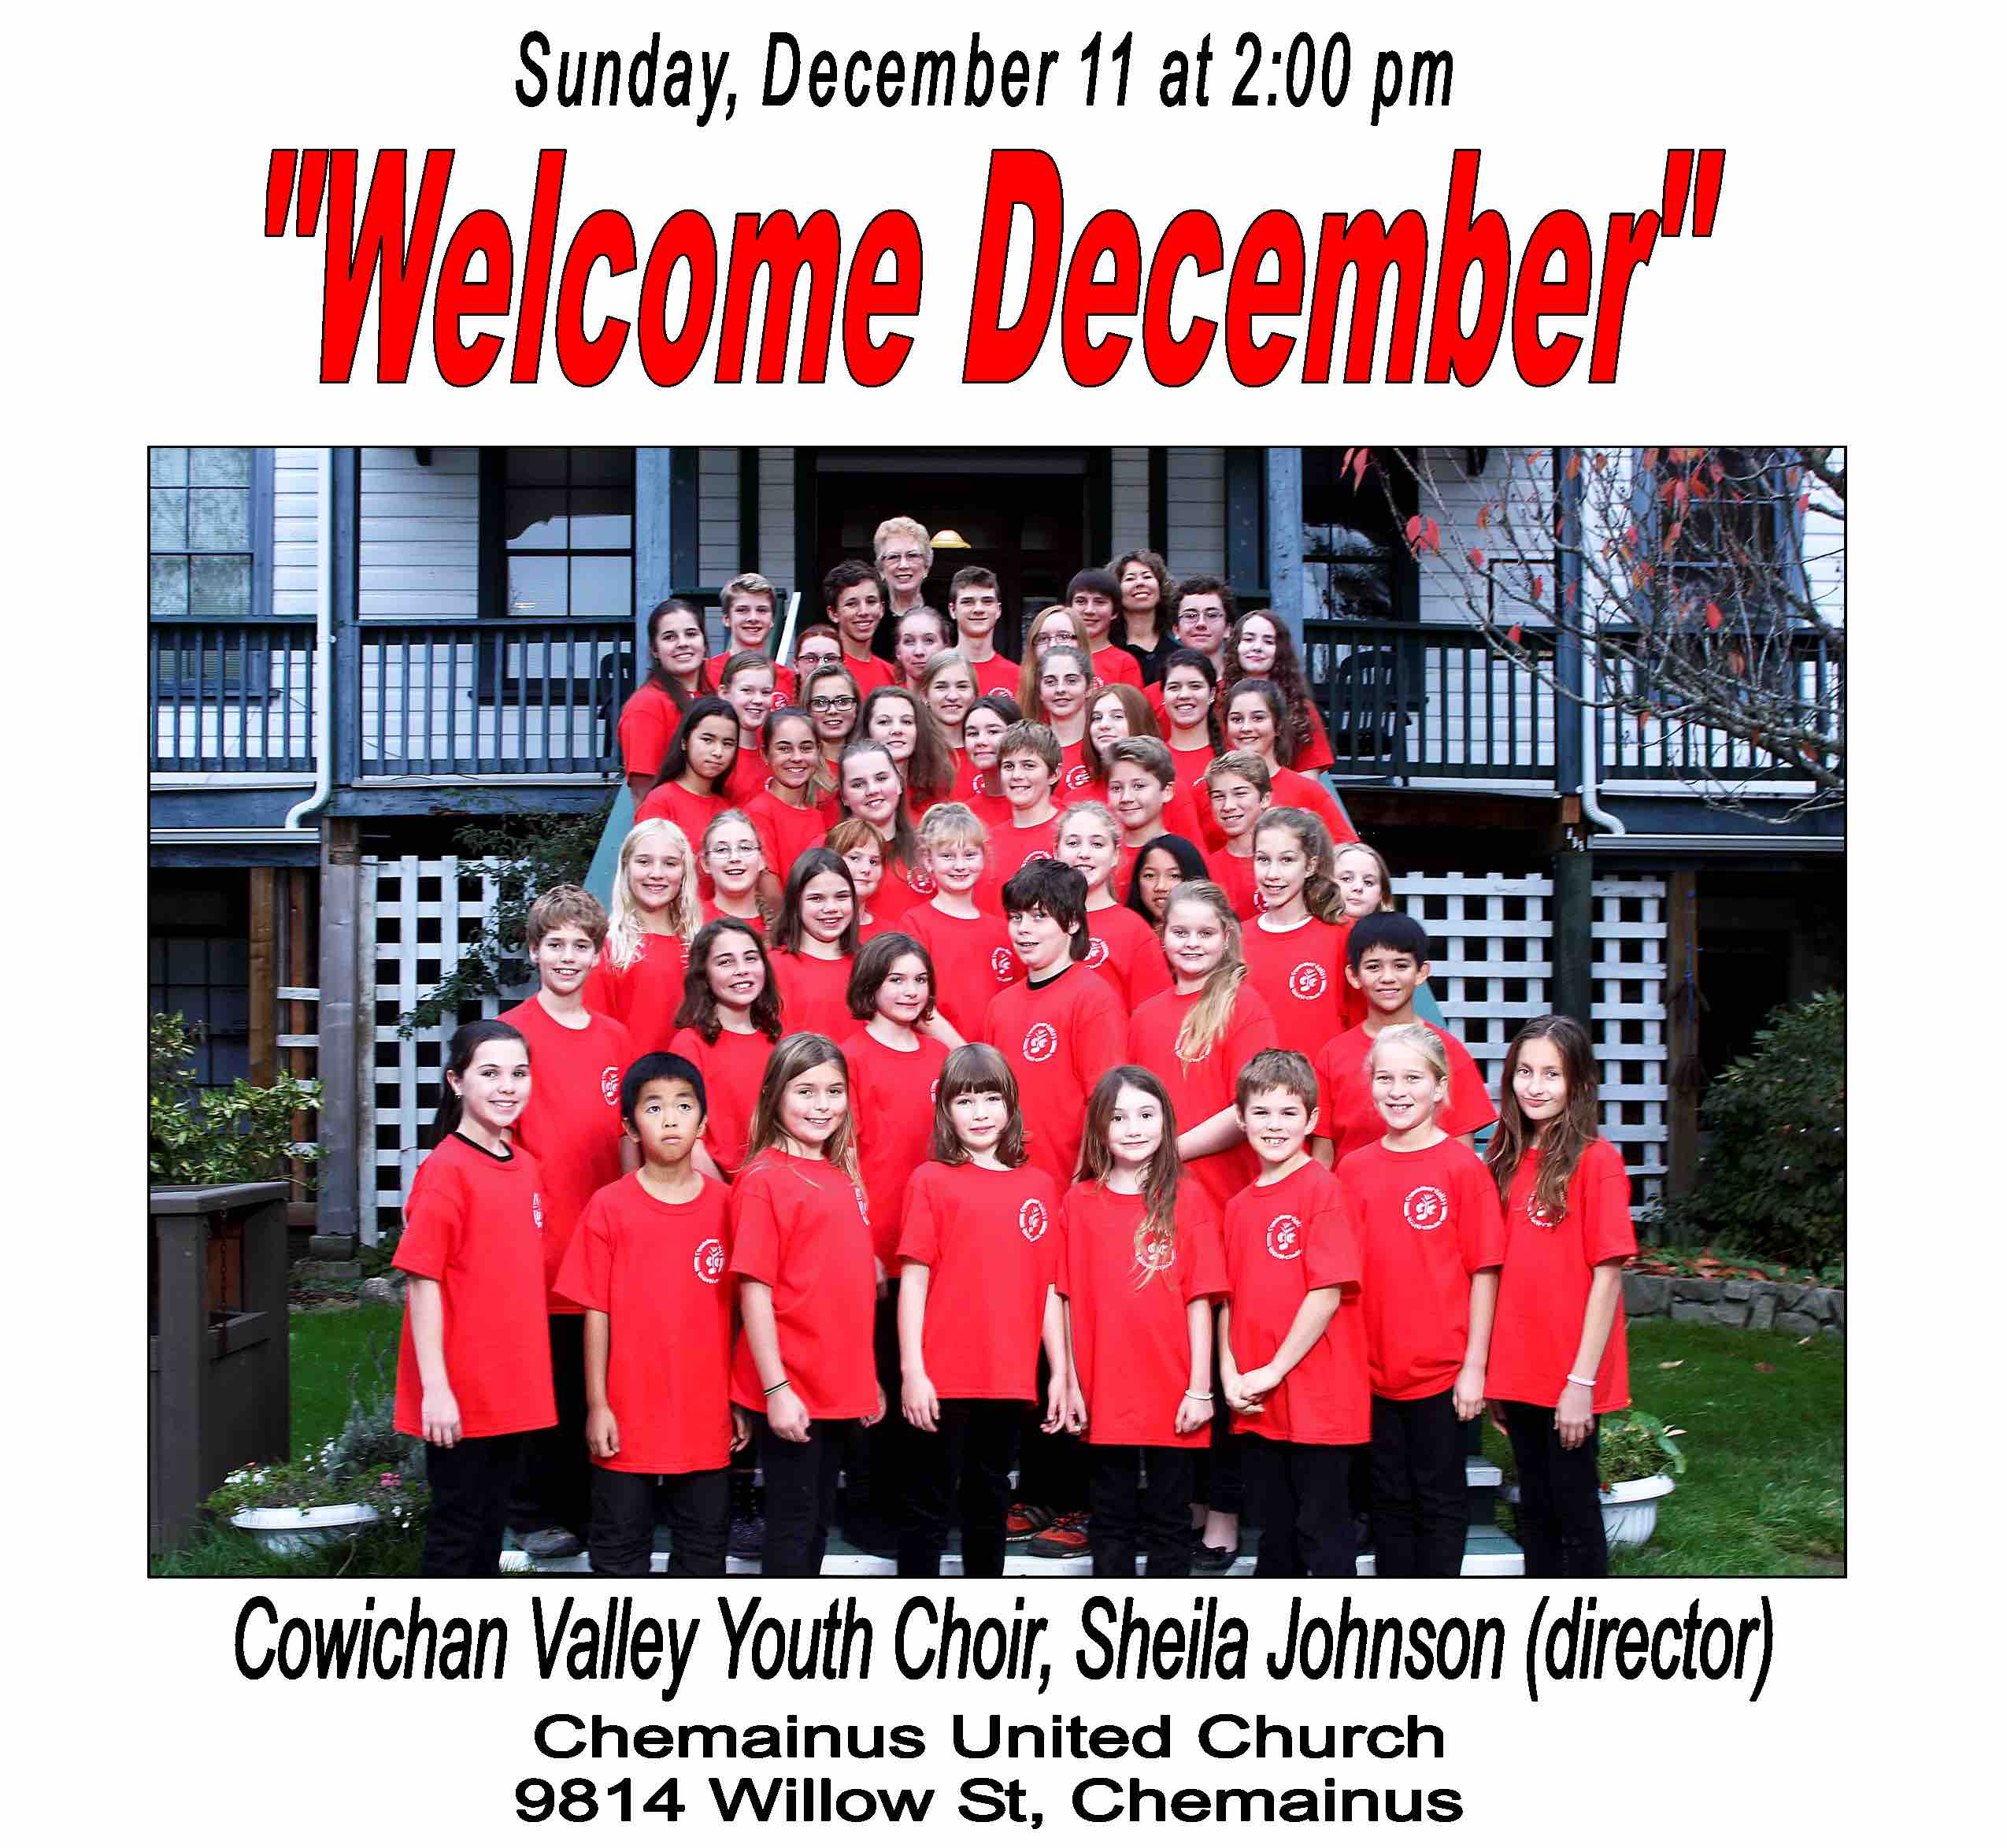 2016-12-december-11-cowichan-valley-youth-choir-web